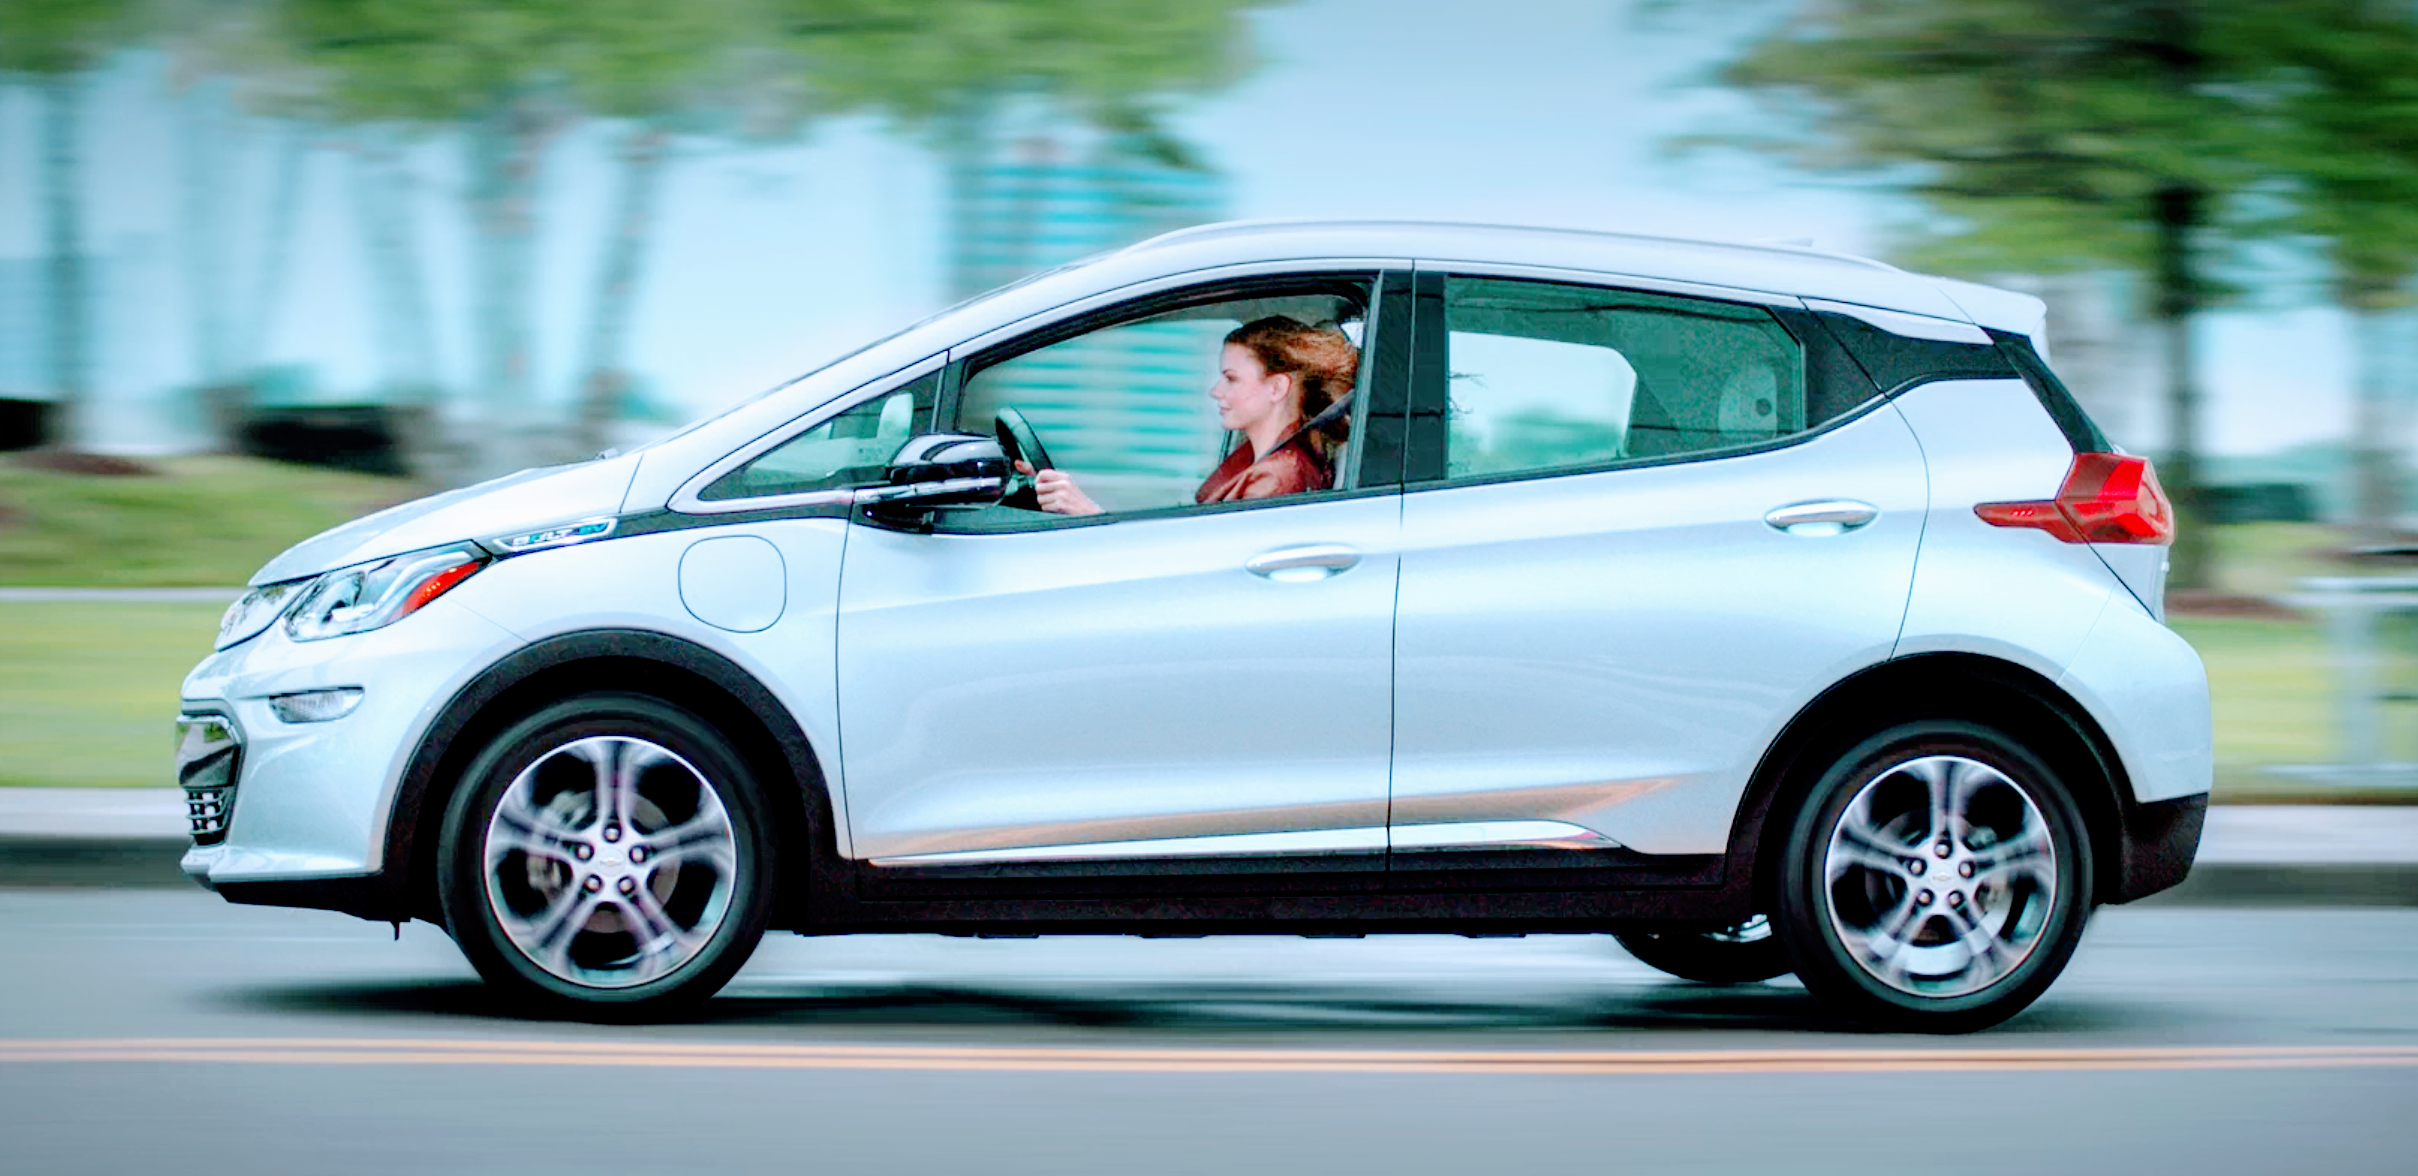 Detroit Free Press Names 2017 Chevy Bolt Ev As Car Of The Year Cheap Cars For Sale Electric Cars For Sale Cars For Sale